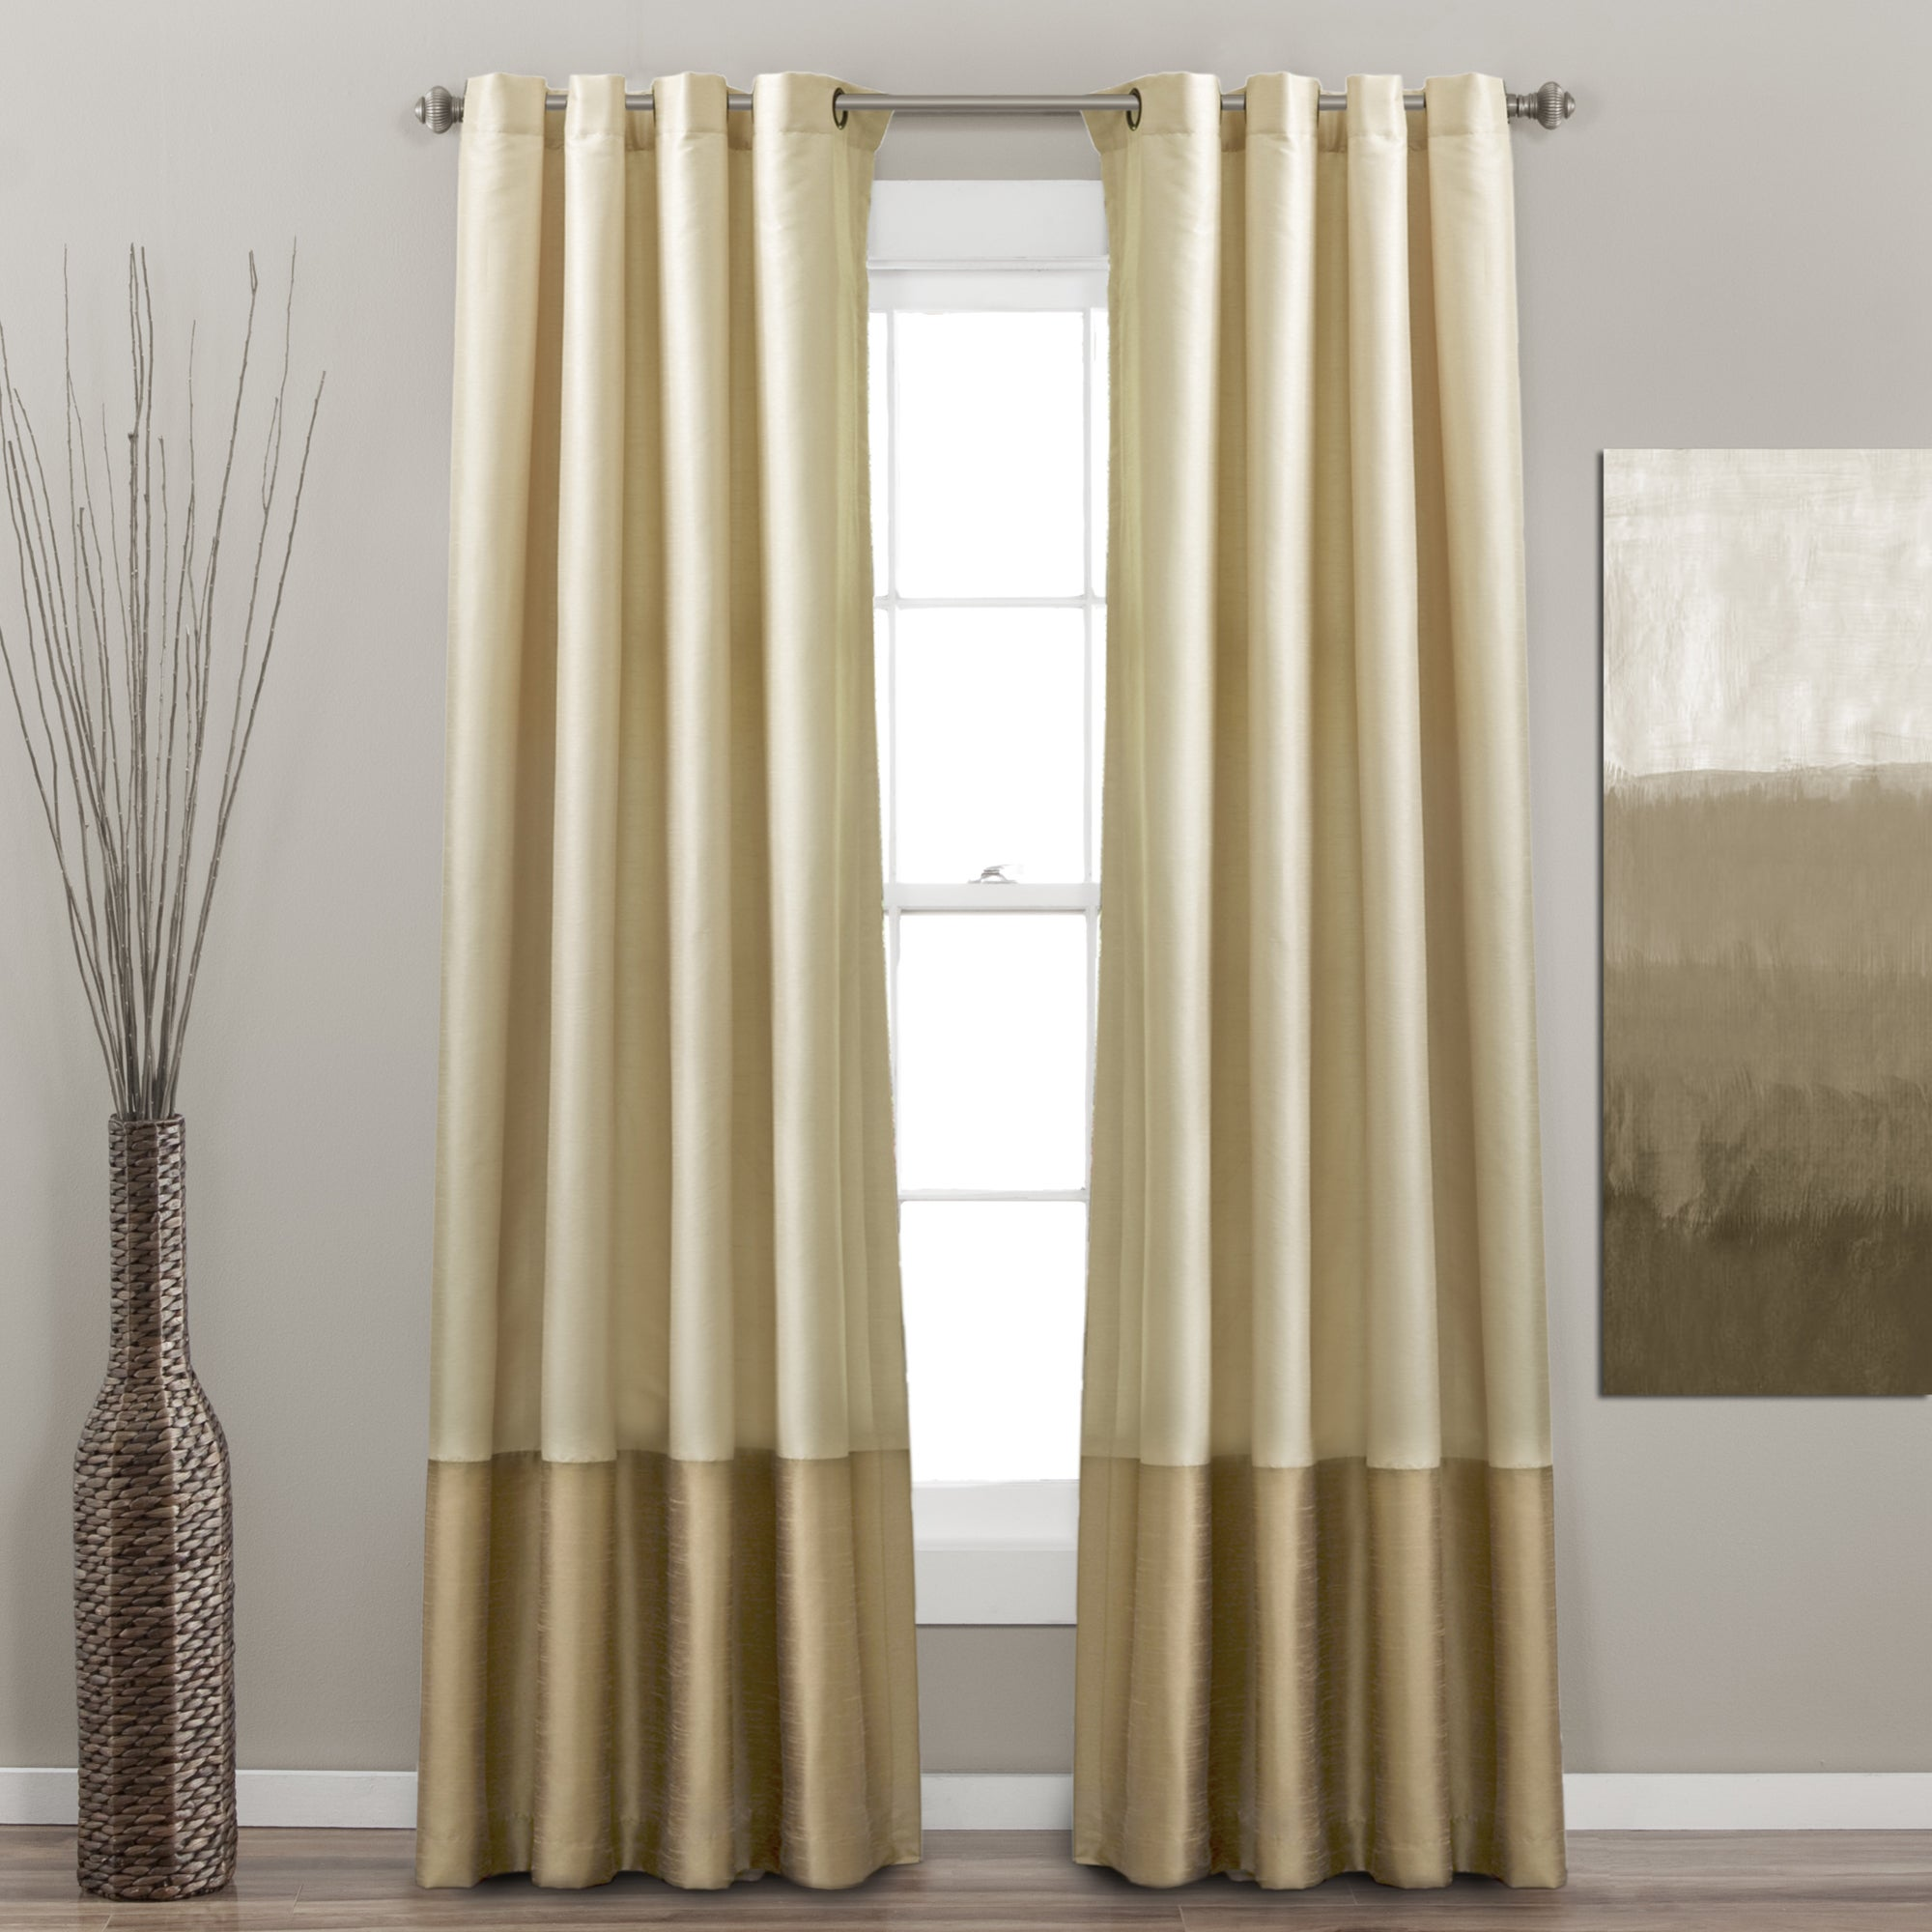 home terra by panels panel beige pair ivory curtain decor com dp inch amazon kitchen lush curtains